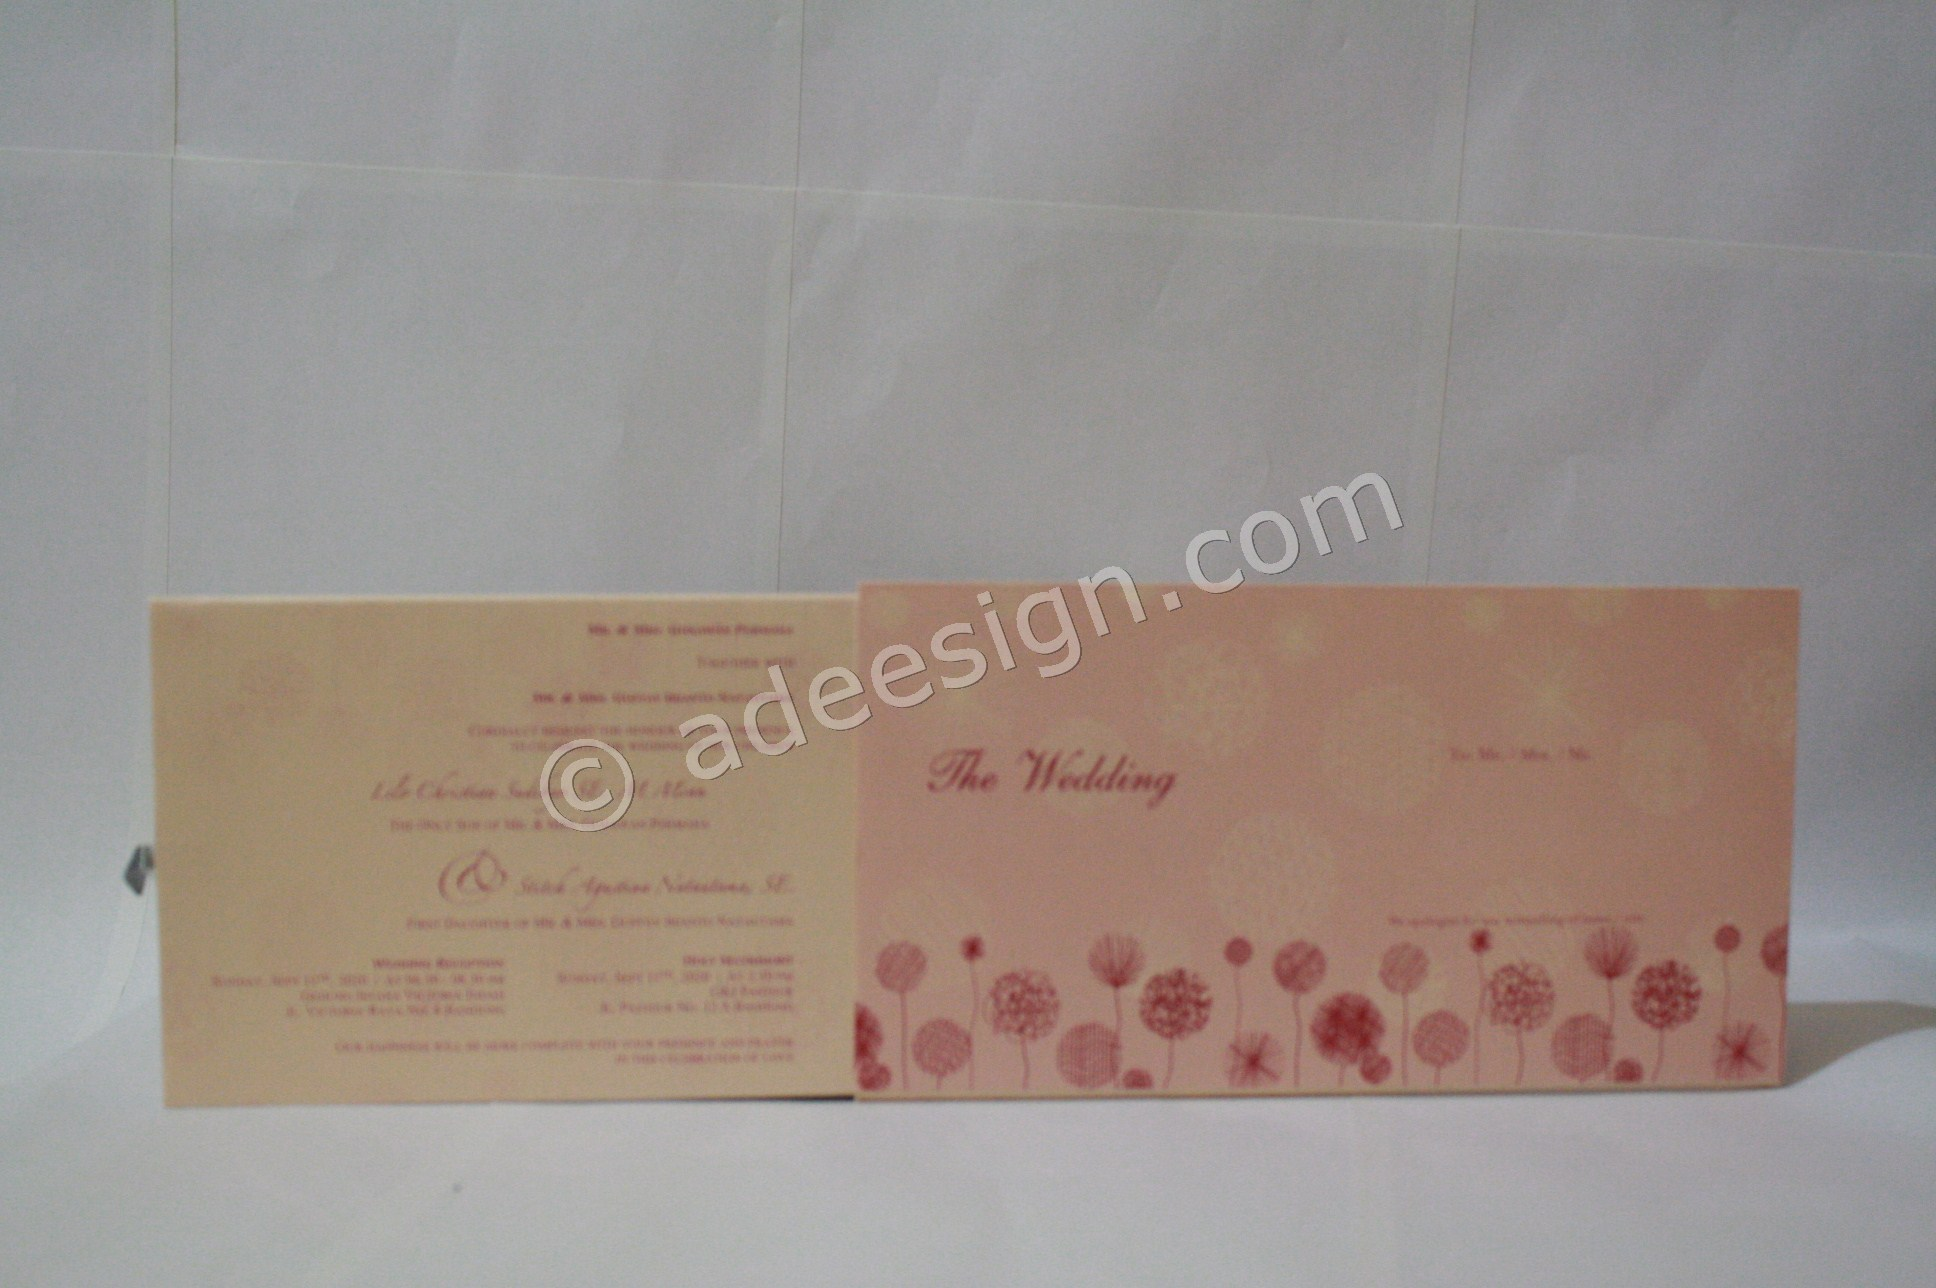 Undangan Pernikahan Hardcover ED67 3 - Percetakan Wedding Invitations Eksklusif di Dukuh Setro